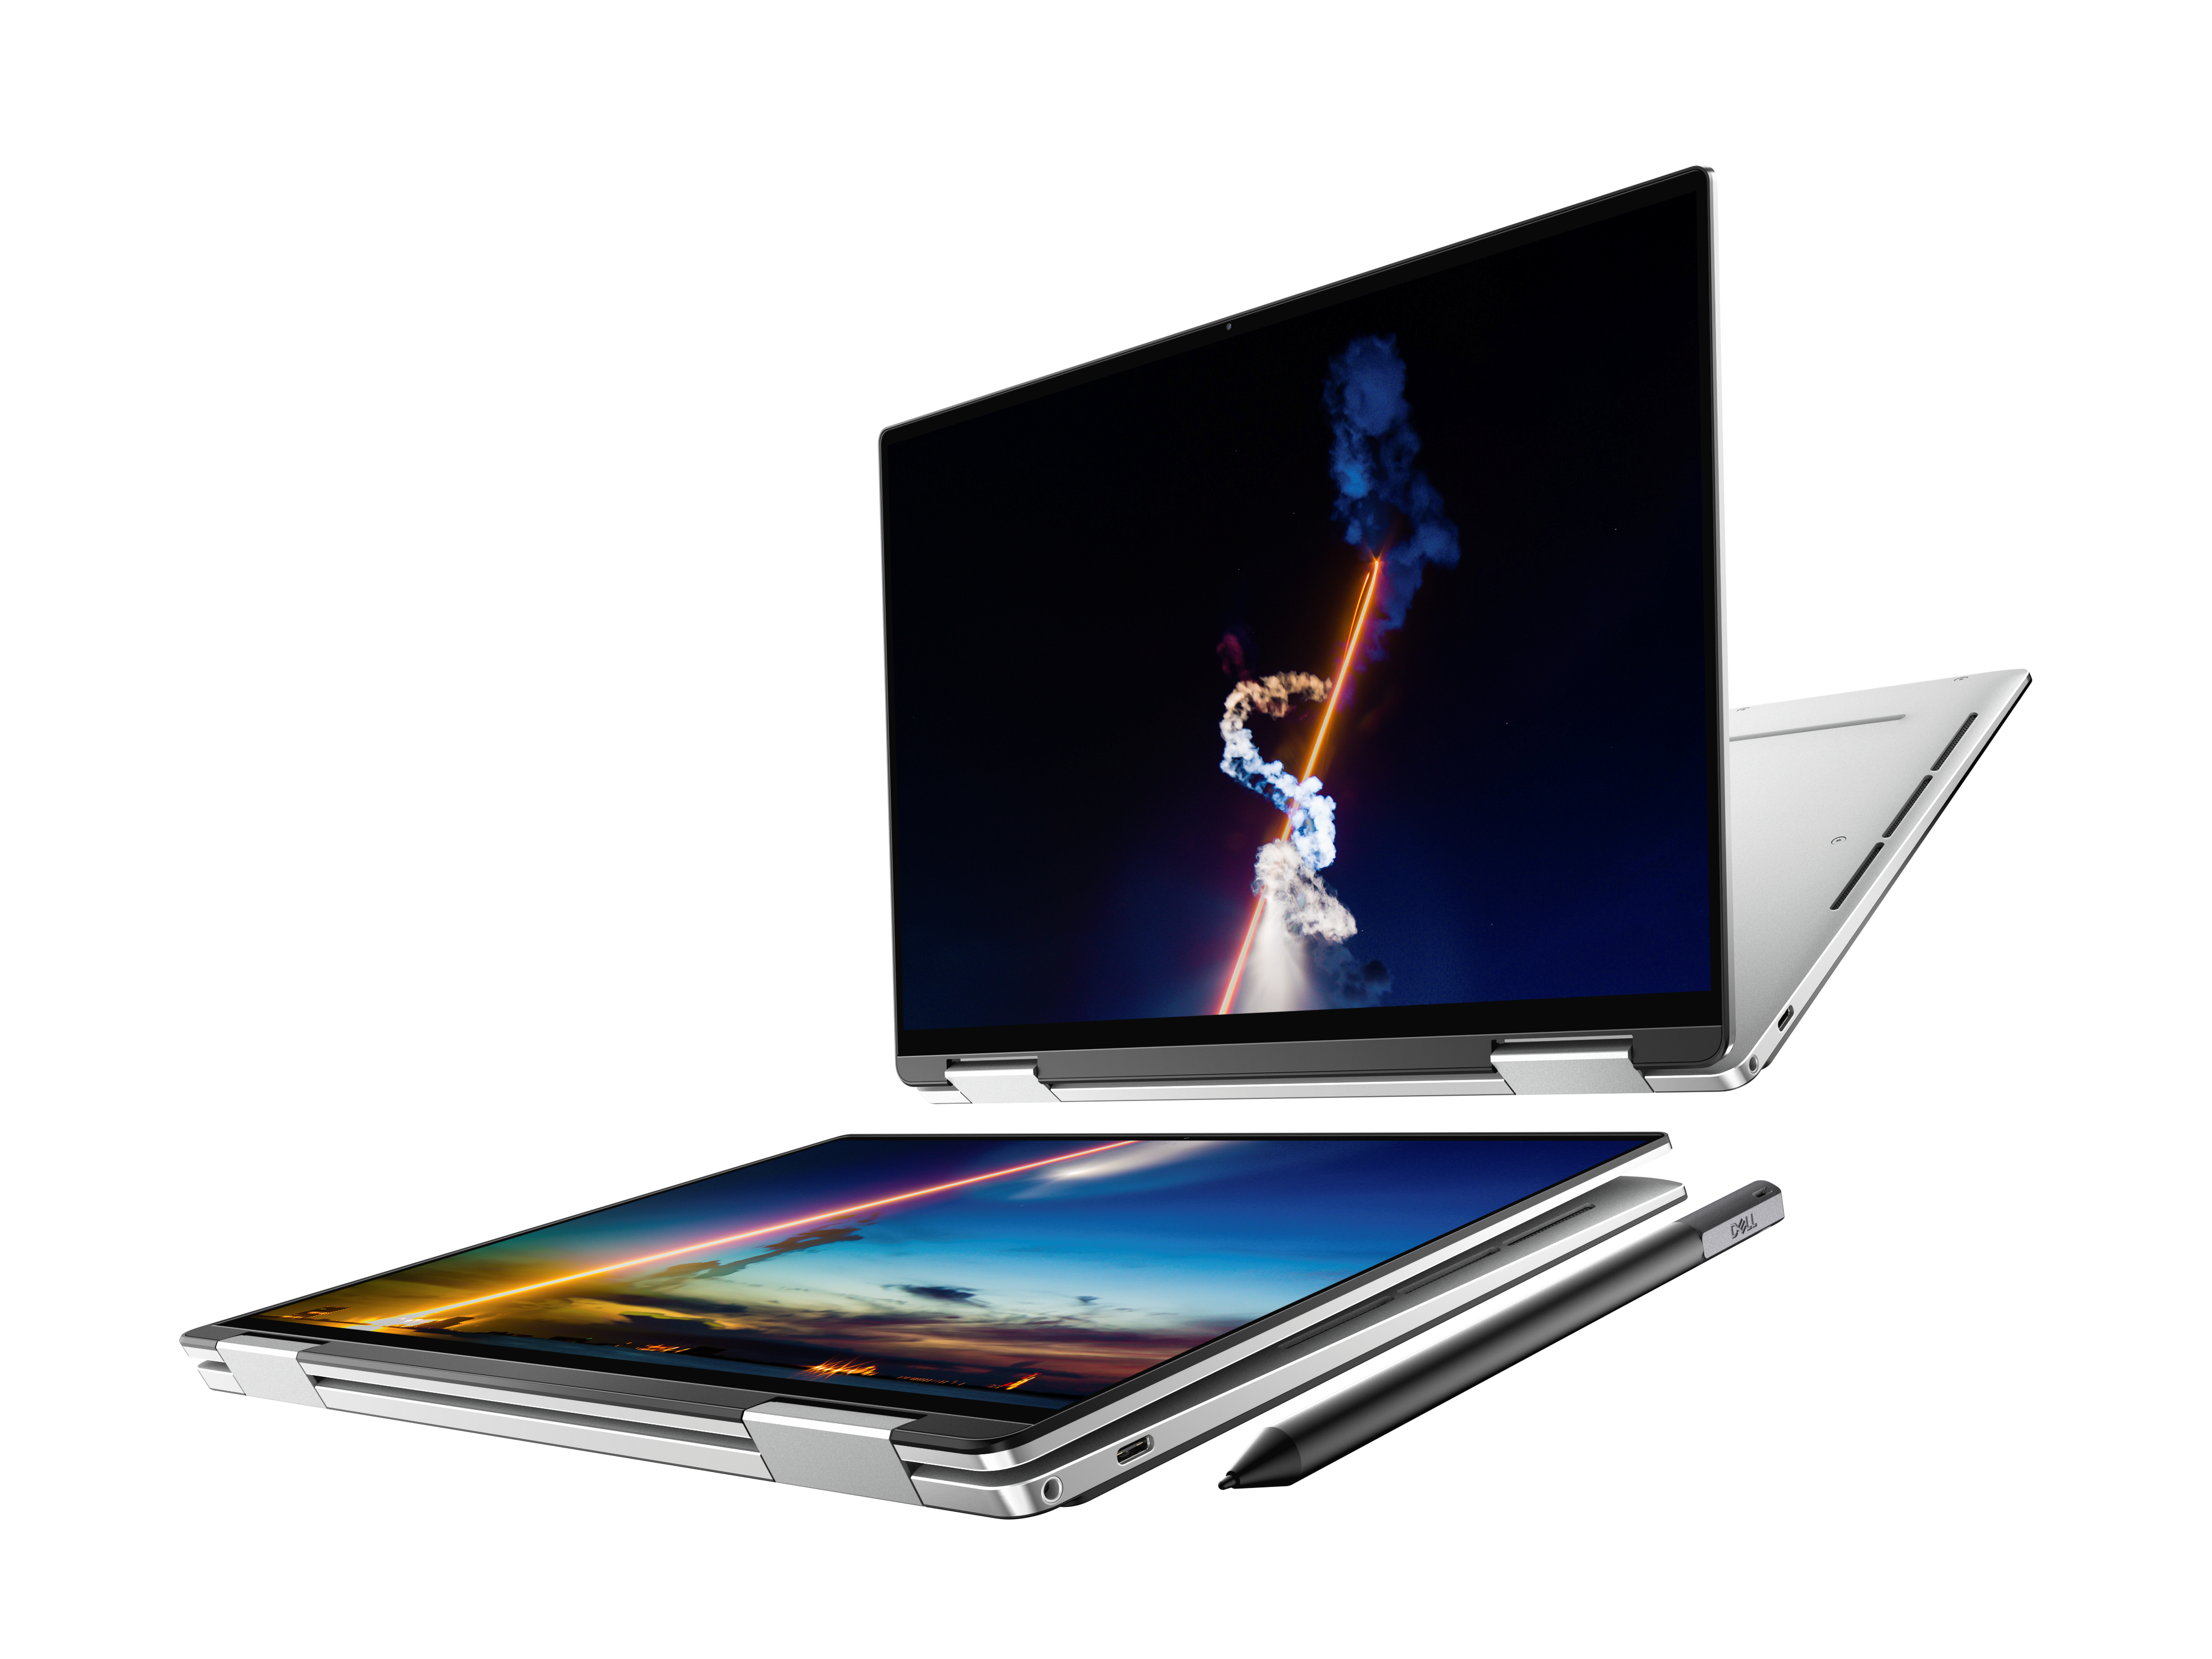 Xps 13 2in1